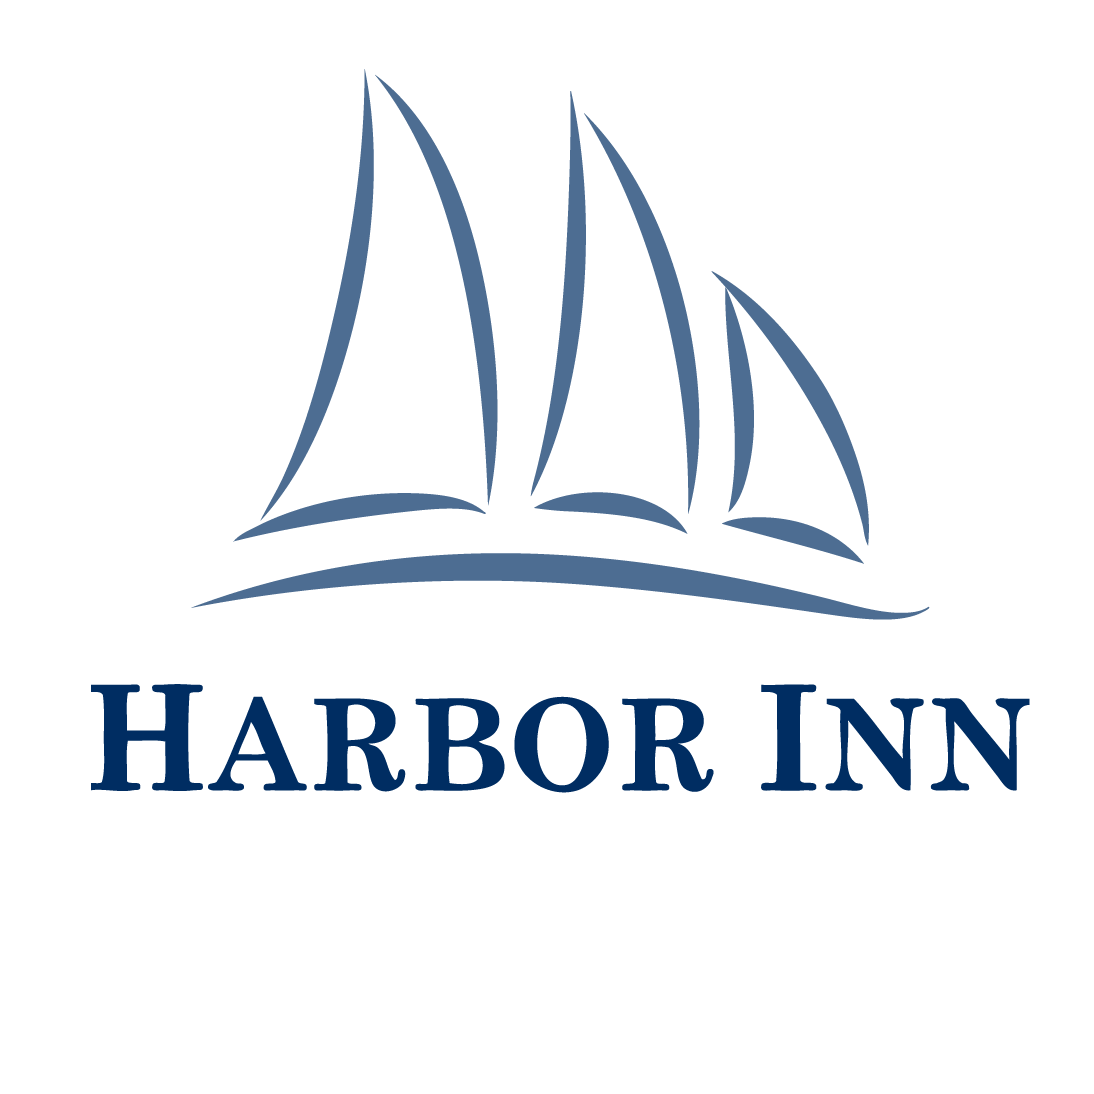 Harbor Inn Kennebunkport